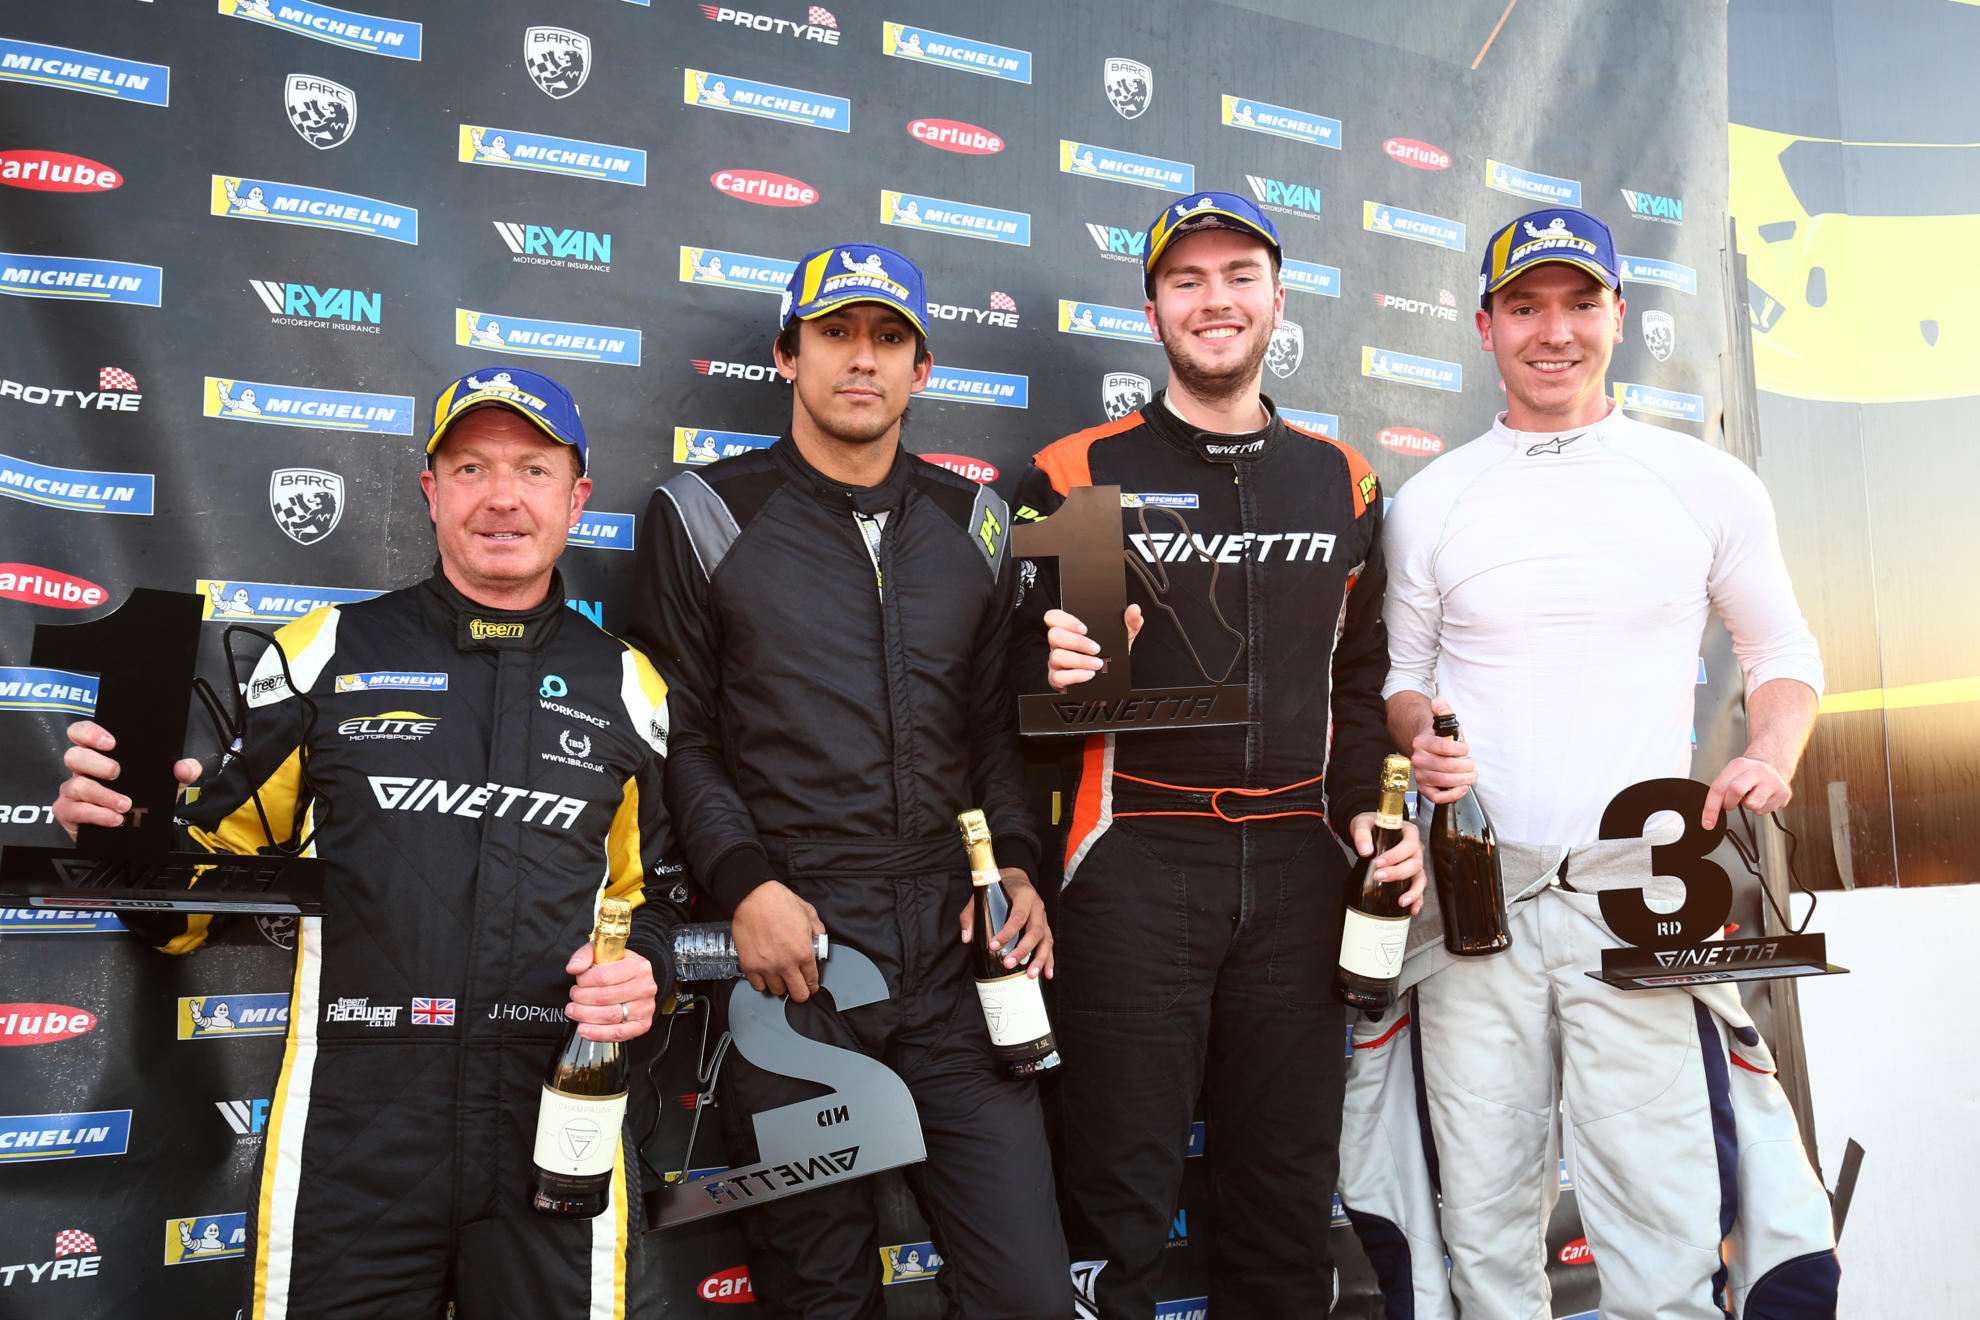 Barclay and Oliphant Win Final G40 Cup Races Of The Season